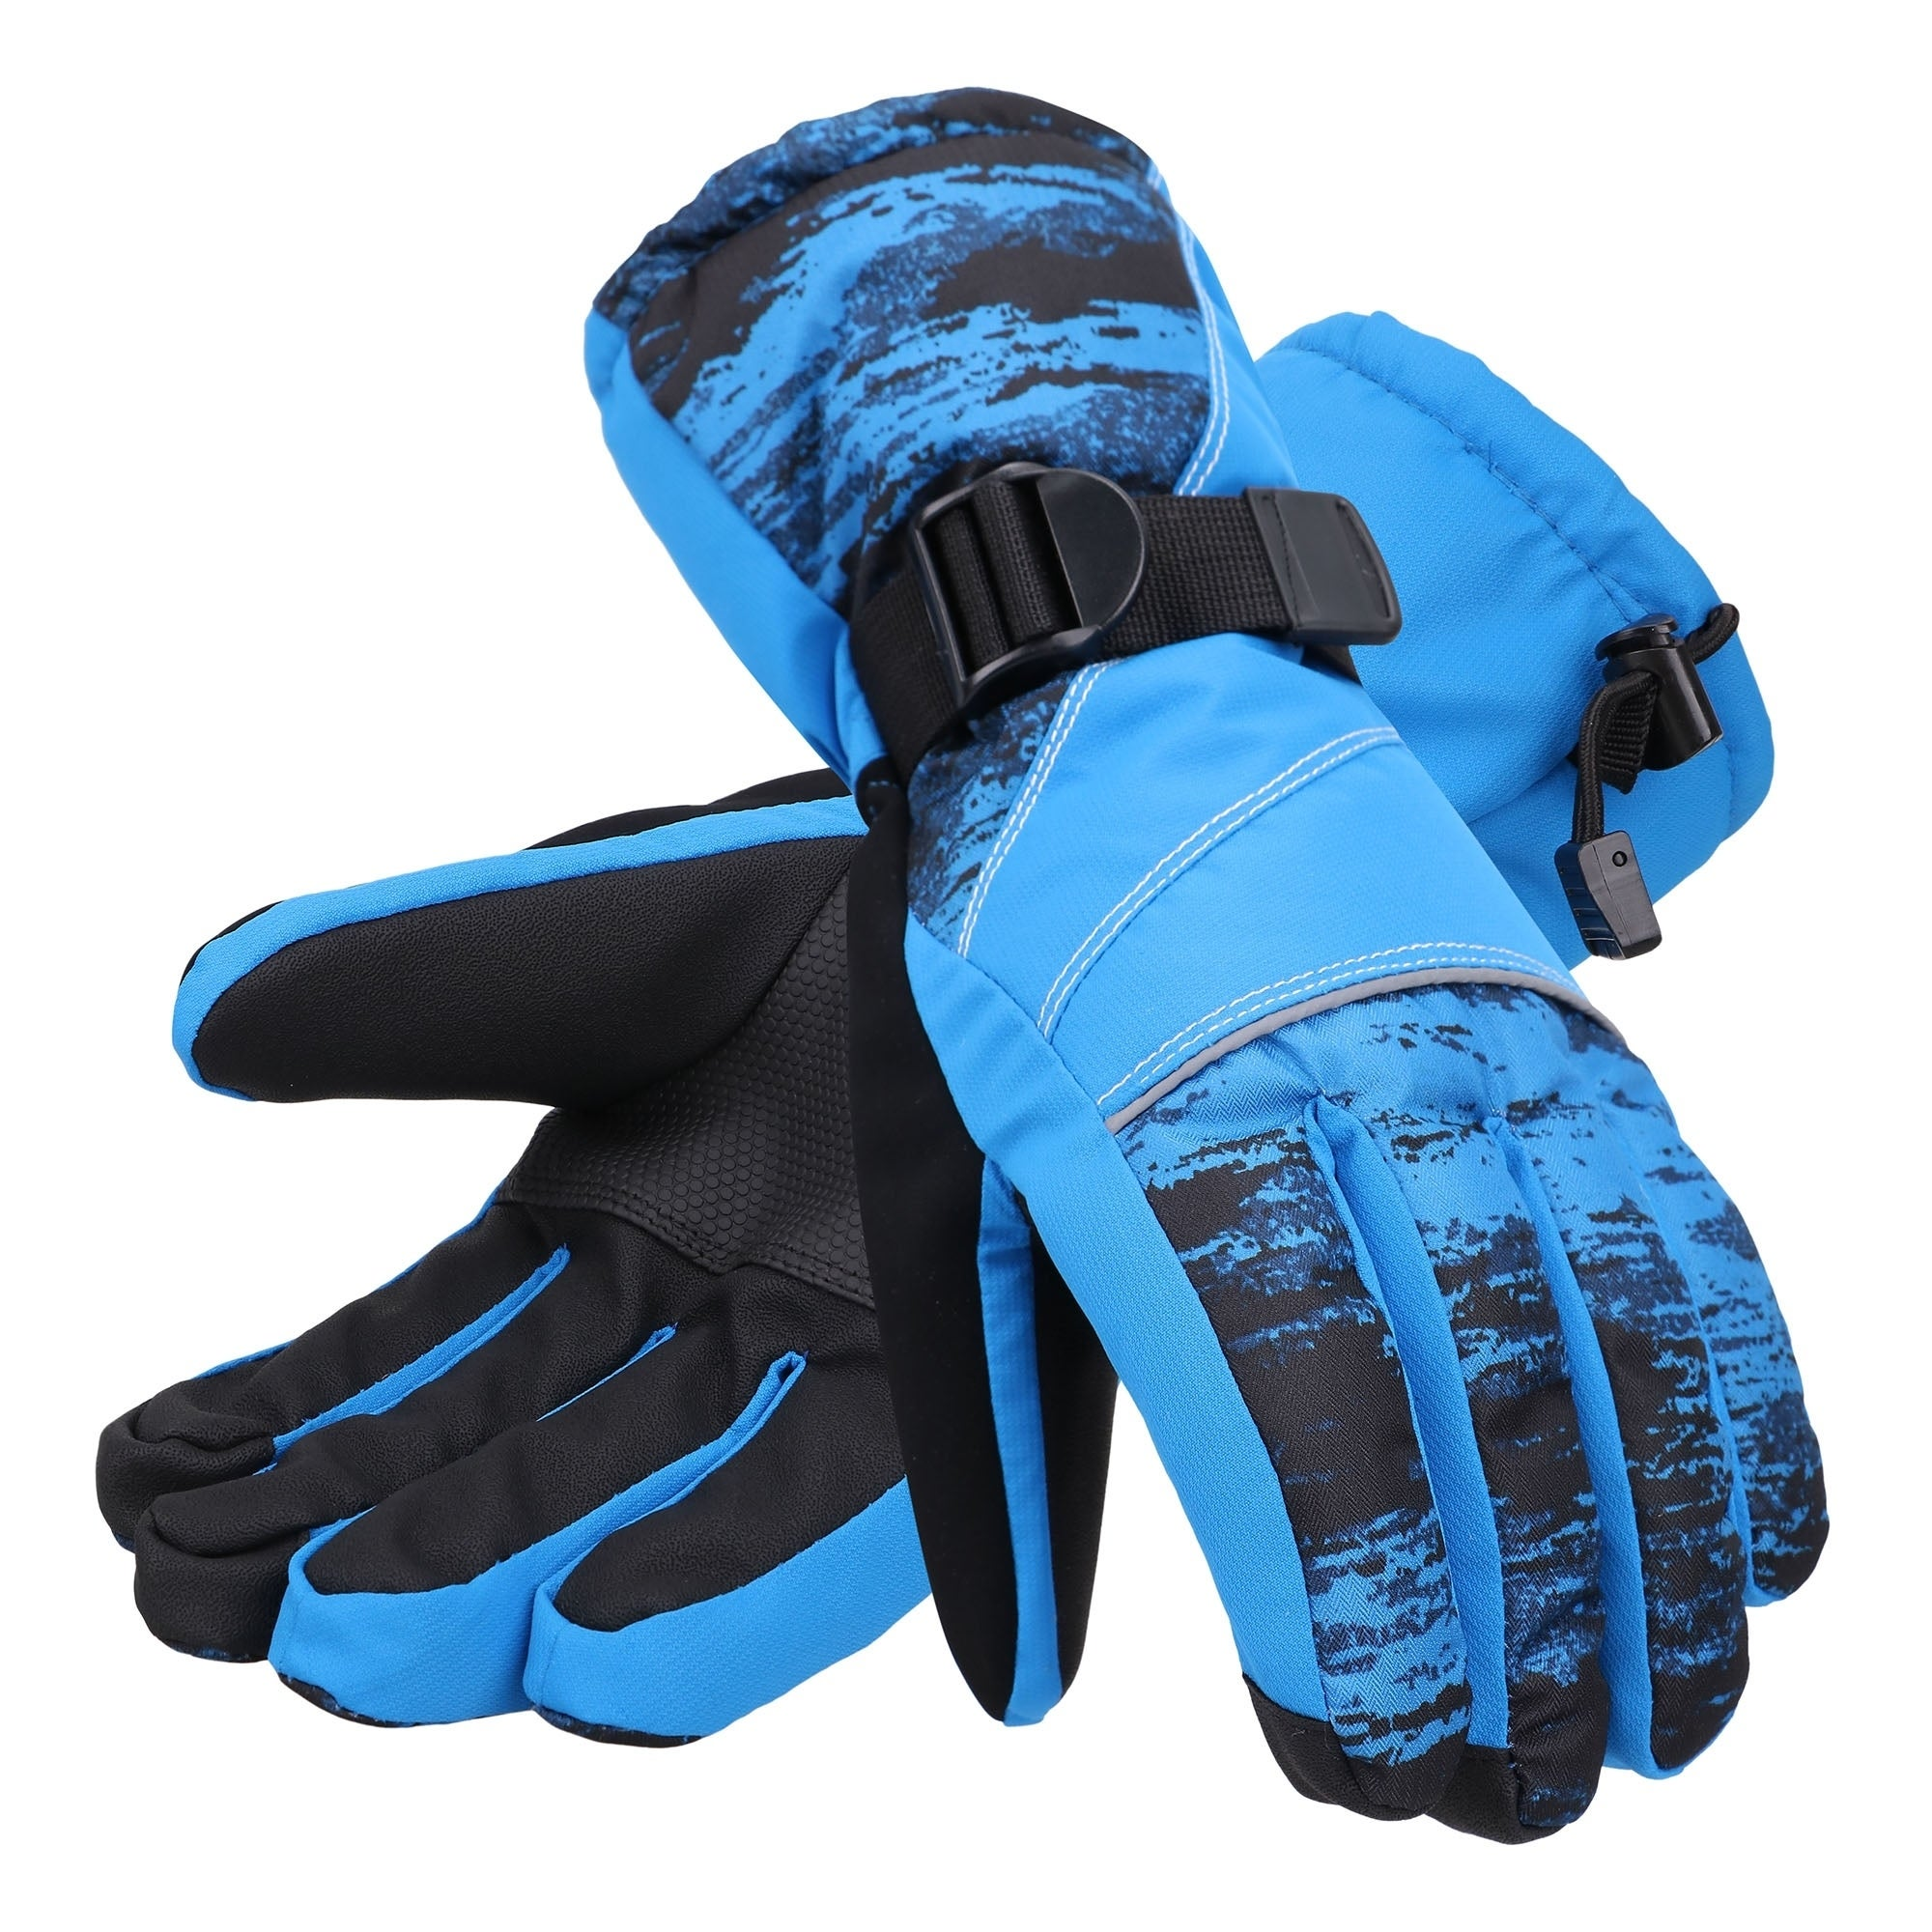 Men's Accessories Andorra Men's Thinsulate Touchscreen Black Medium Abstract Waterproof Ski Gloves